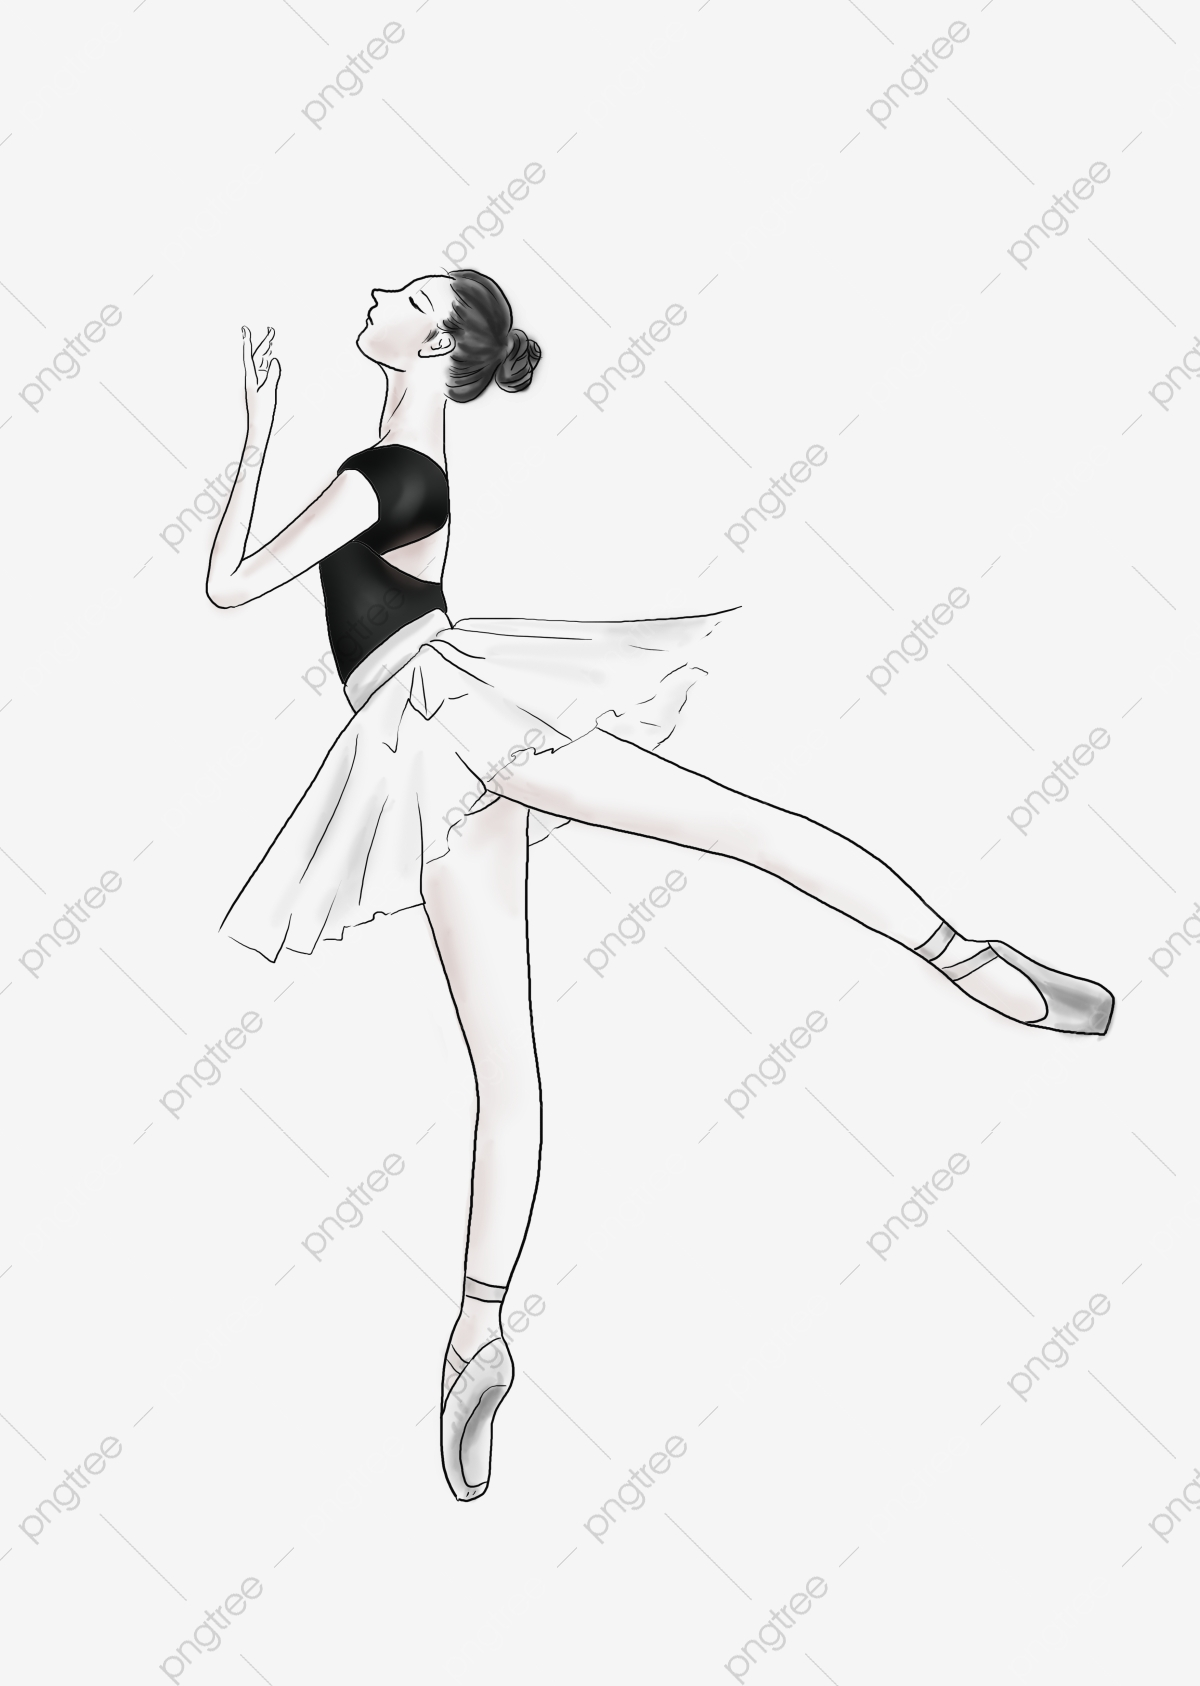 hight resolution of commercial use resource upgrade to premium plan and get license authorization upgradenow ballet dancer ballet clipart